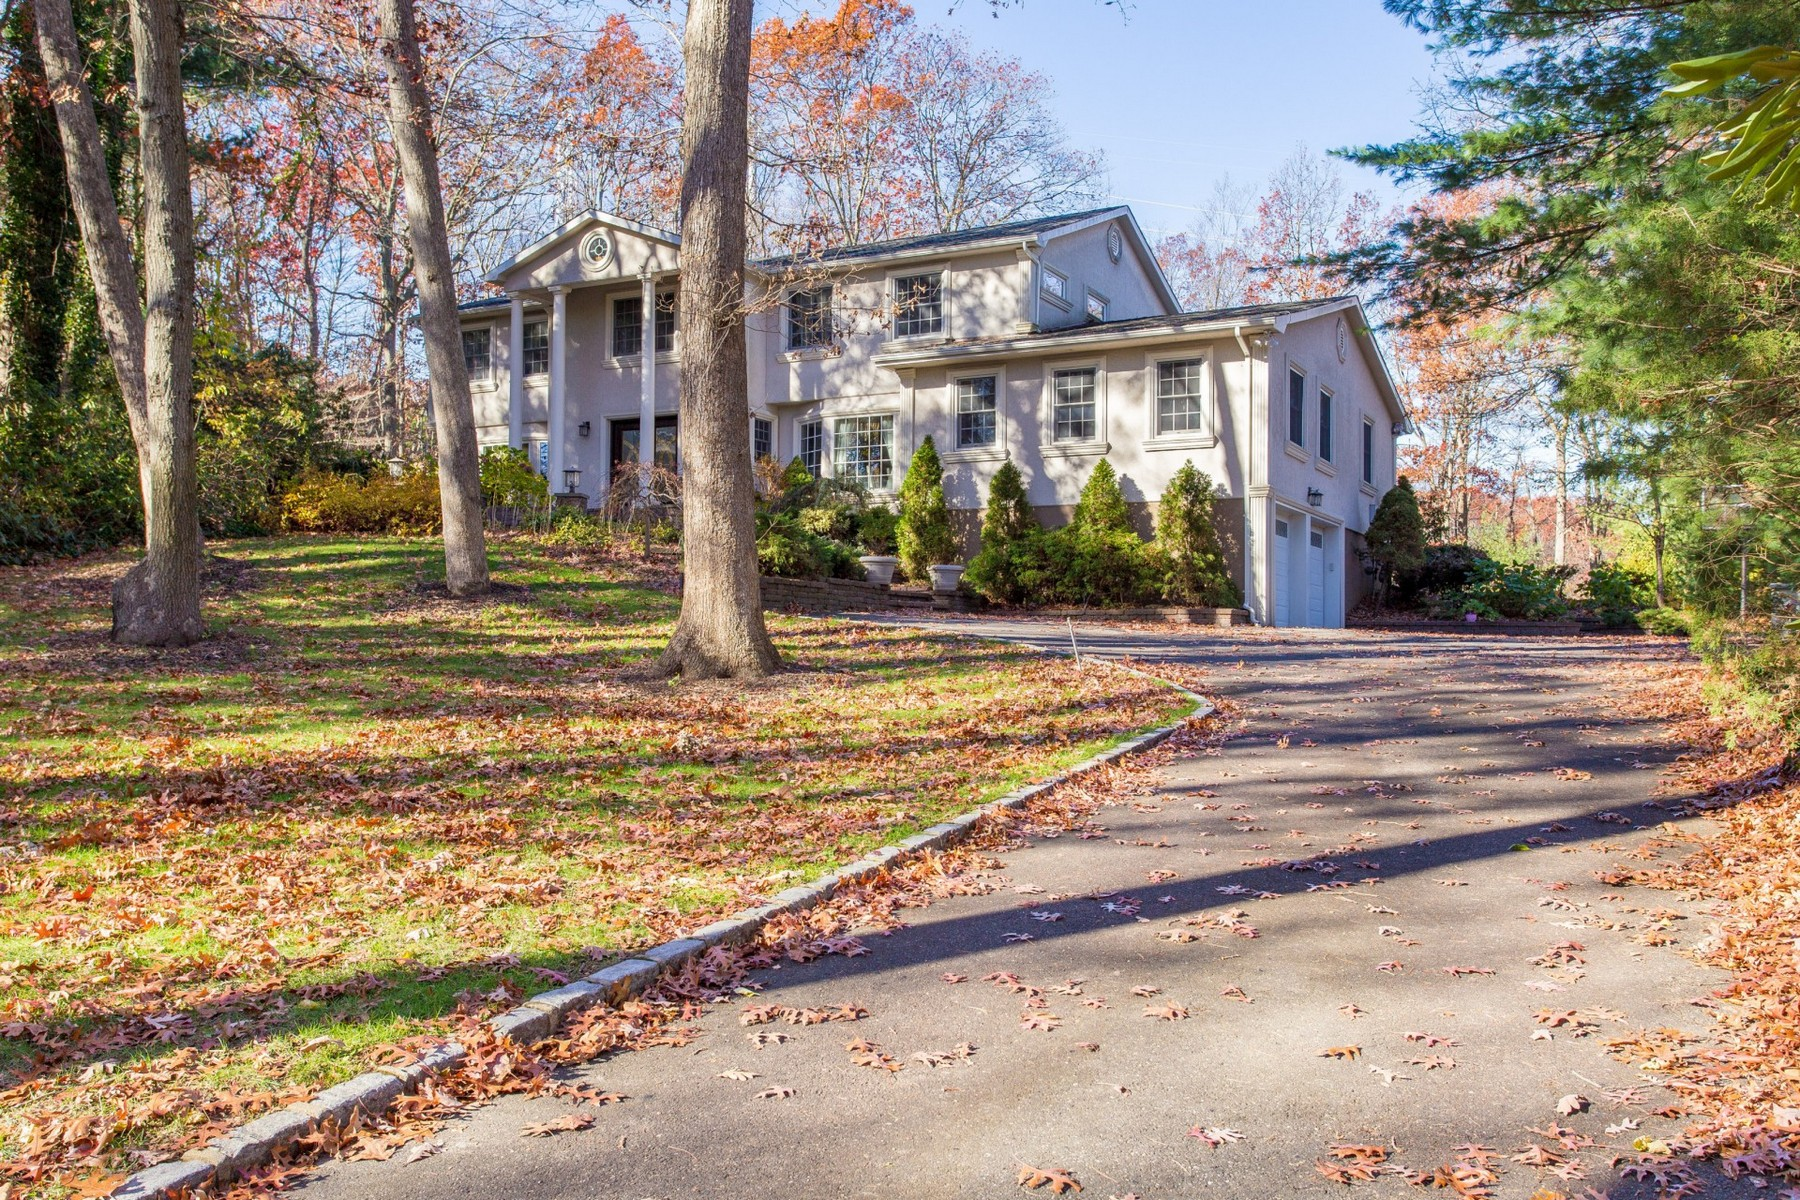 Single Family Home for Sale at Colonial 9 Stony Run Ct Dix Hills, New York 11746 United States